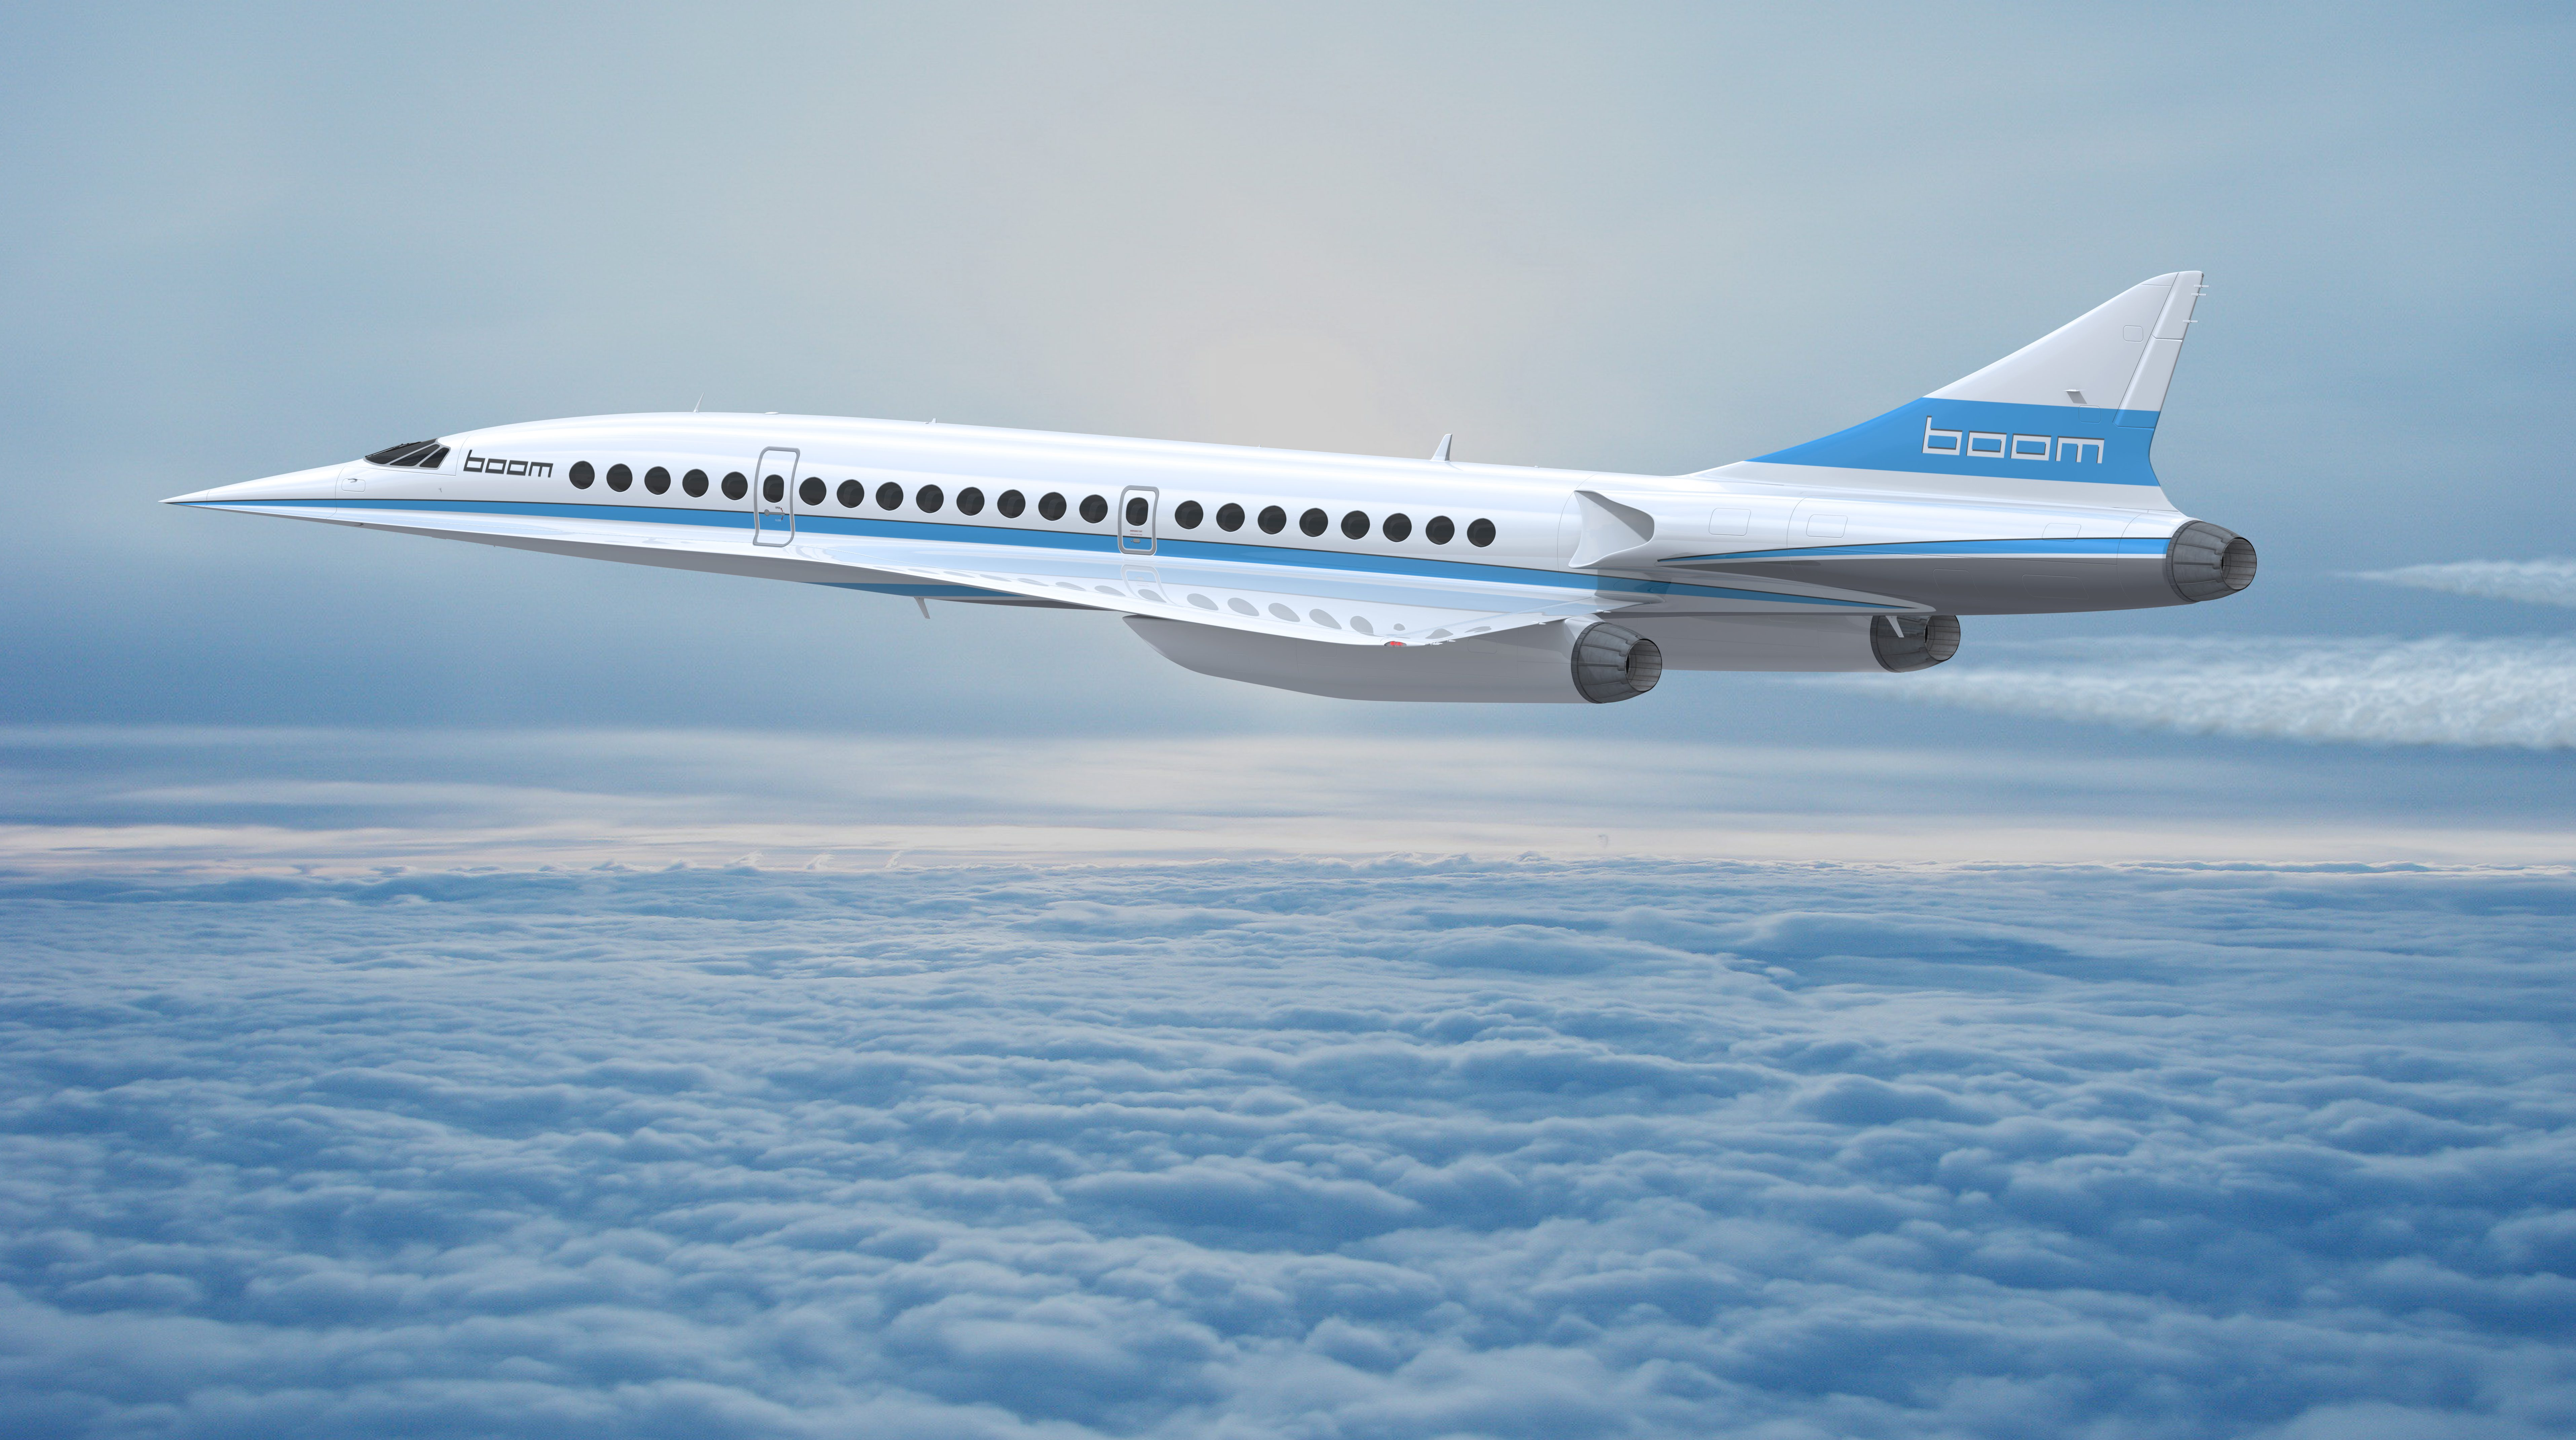 On Nov.15, the Denver-based technology company revealed its prototype of a supersonic passenger jet that takes people from New York to London in 3 hours and 15 minutes.